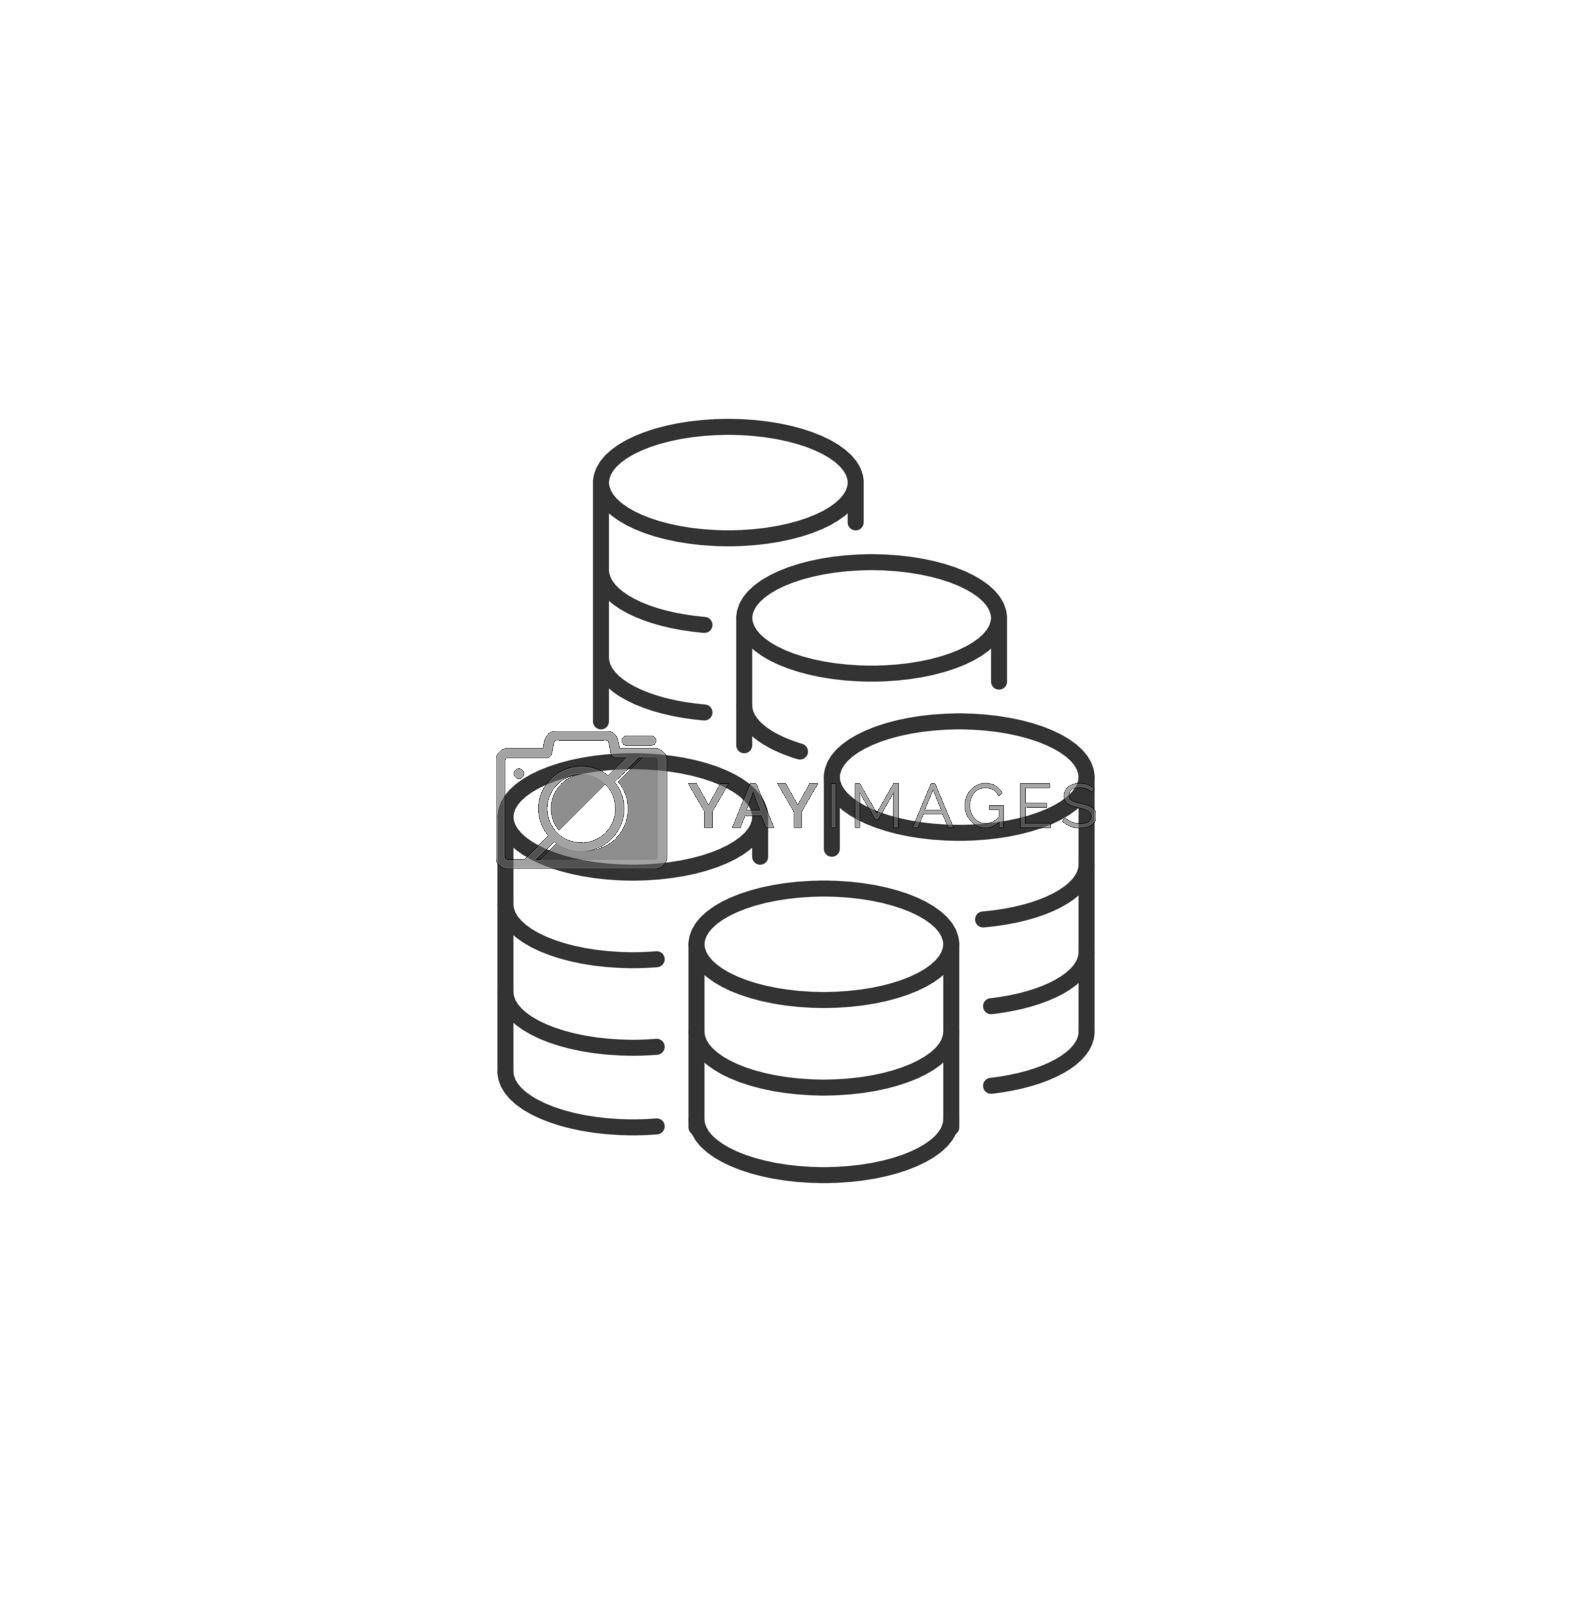 Coins Stack Related Vector Line Icon. Sign Isolated on the White Background. Editable Stroke EPS file. Vector illustration.